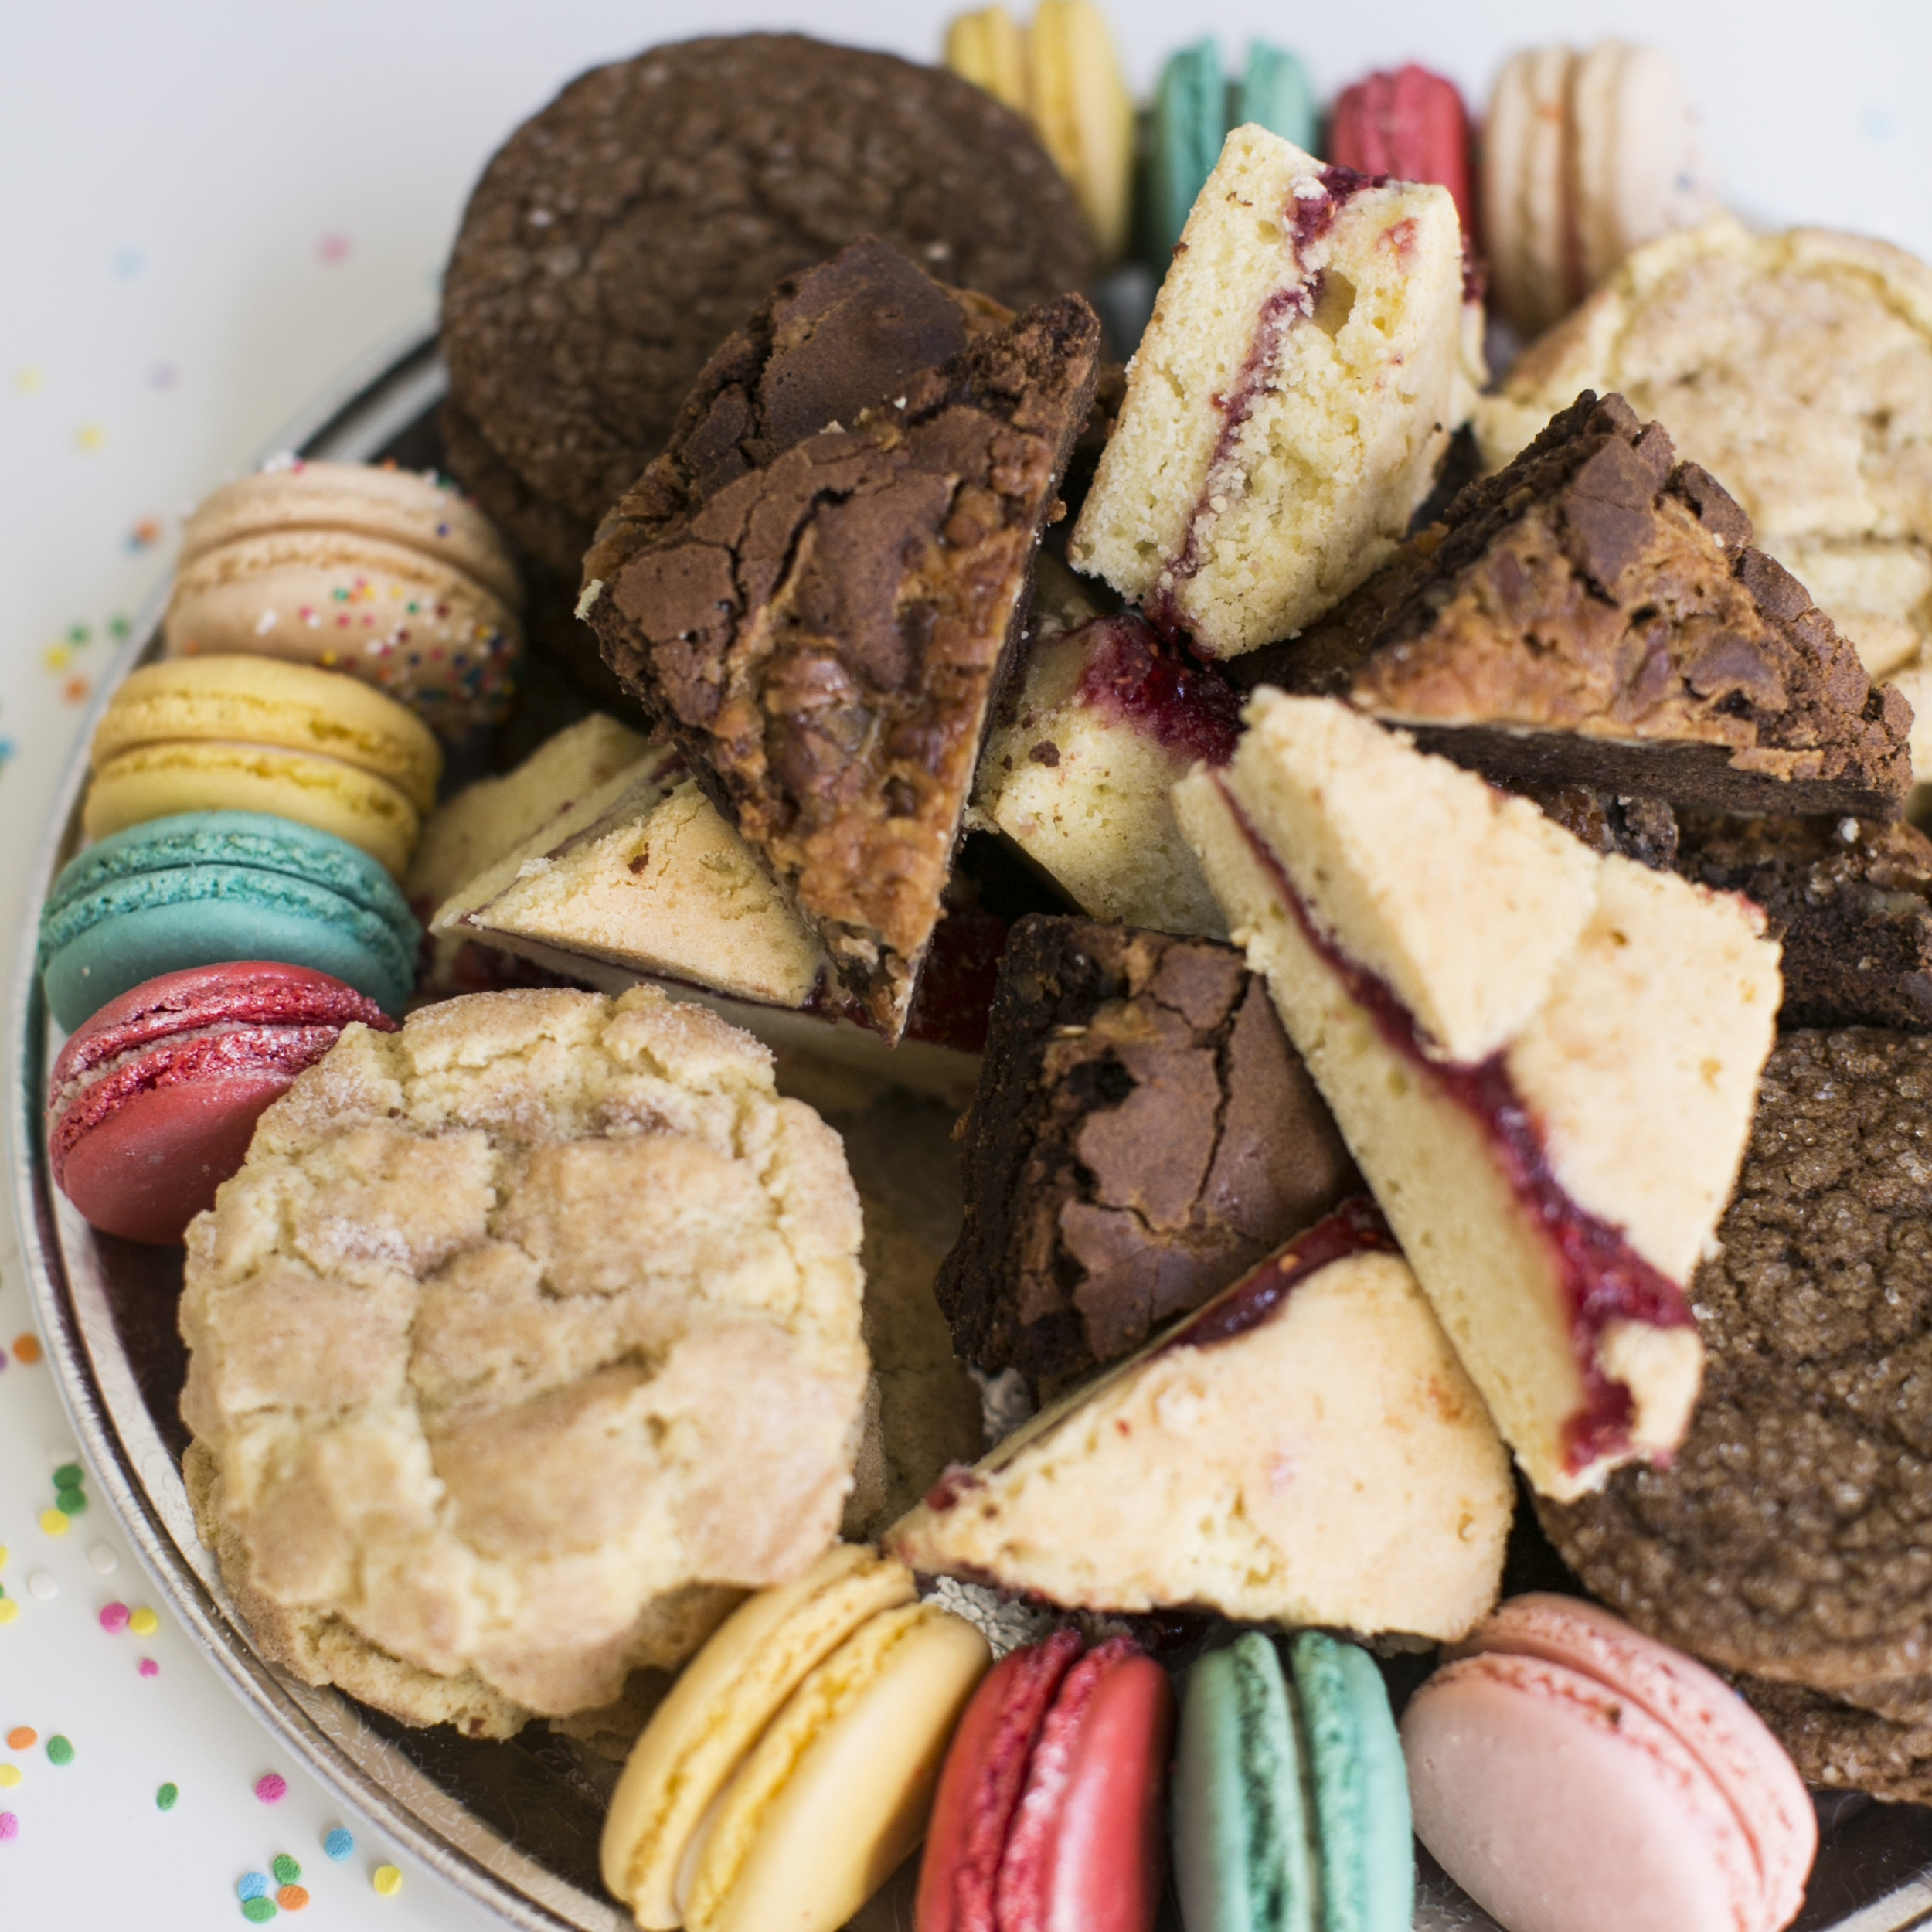 Party Platter  A selection of our best weekly flavors and treats. Approx 50 pieces